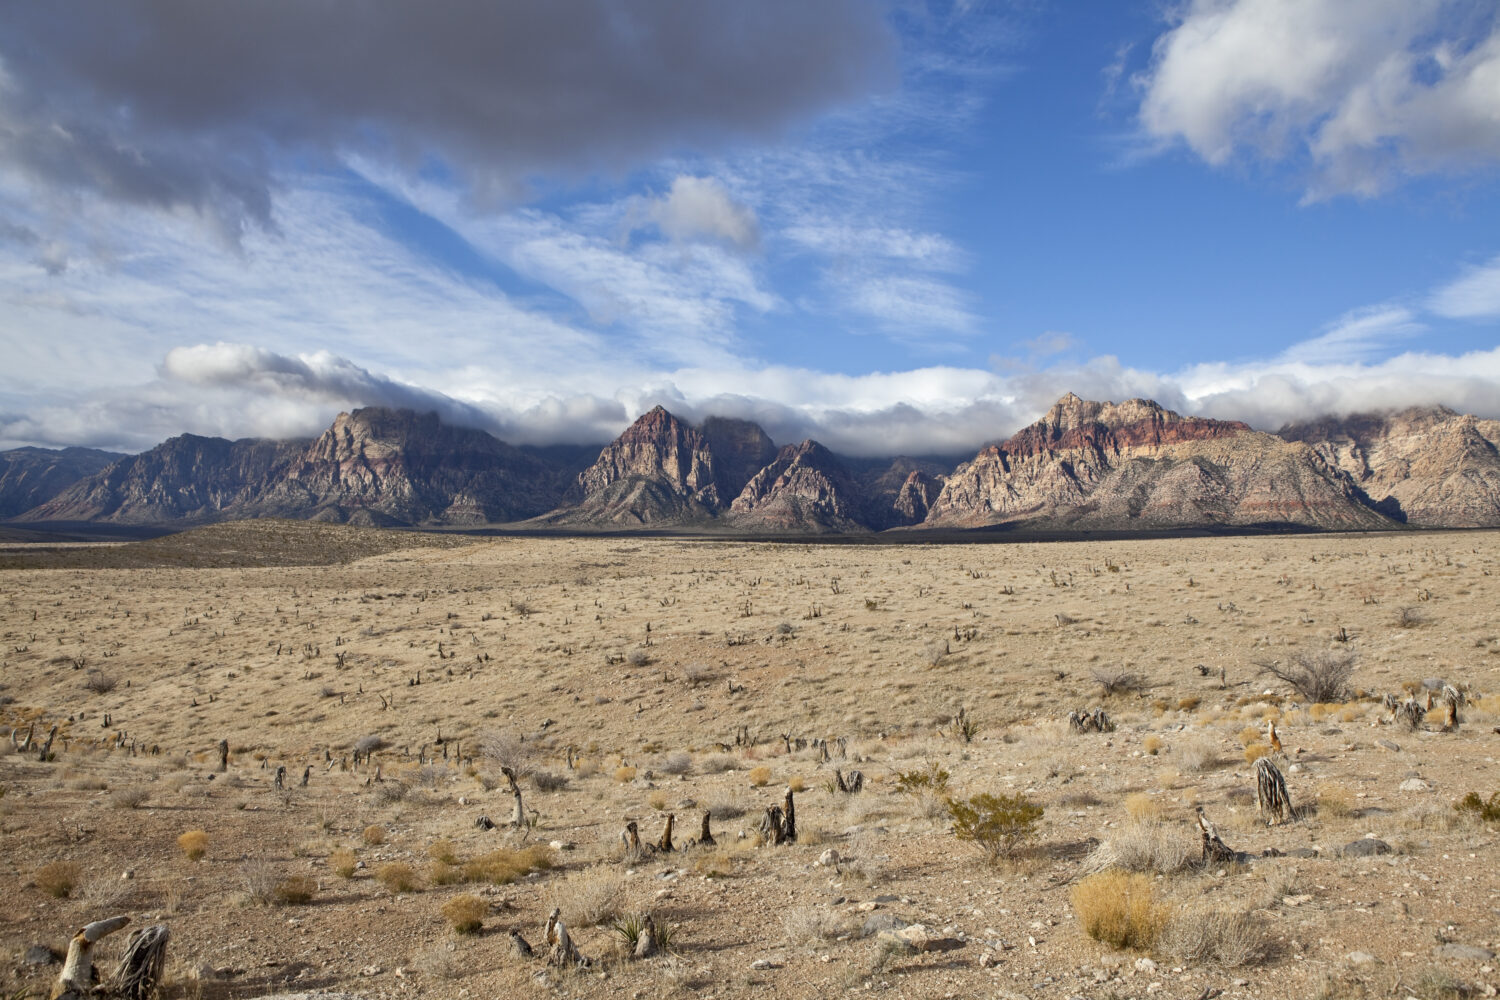 Spring storms roll over Red Rock National Conservation Area in Southern Nevada.